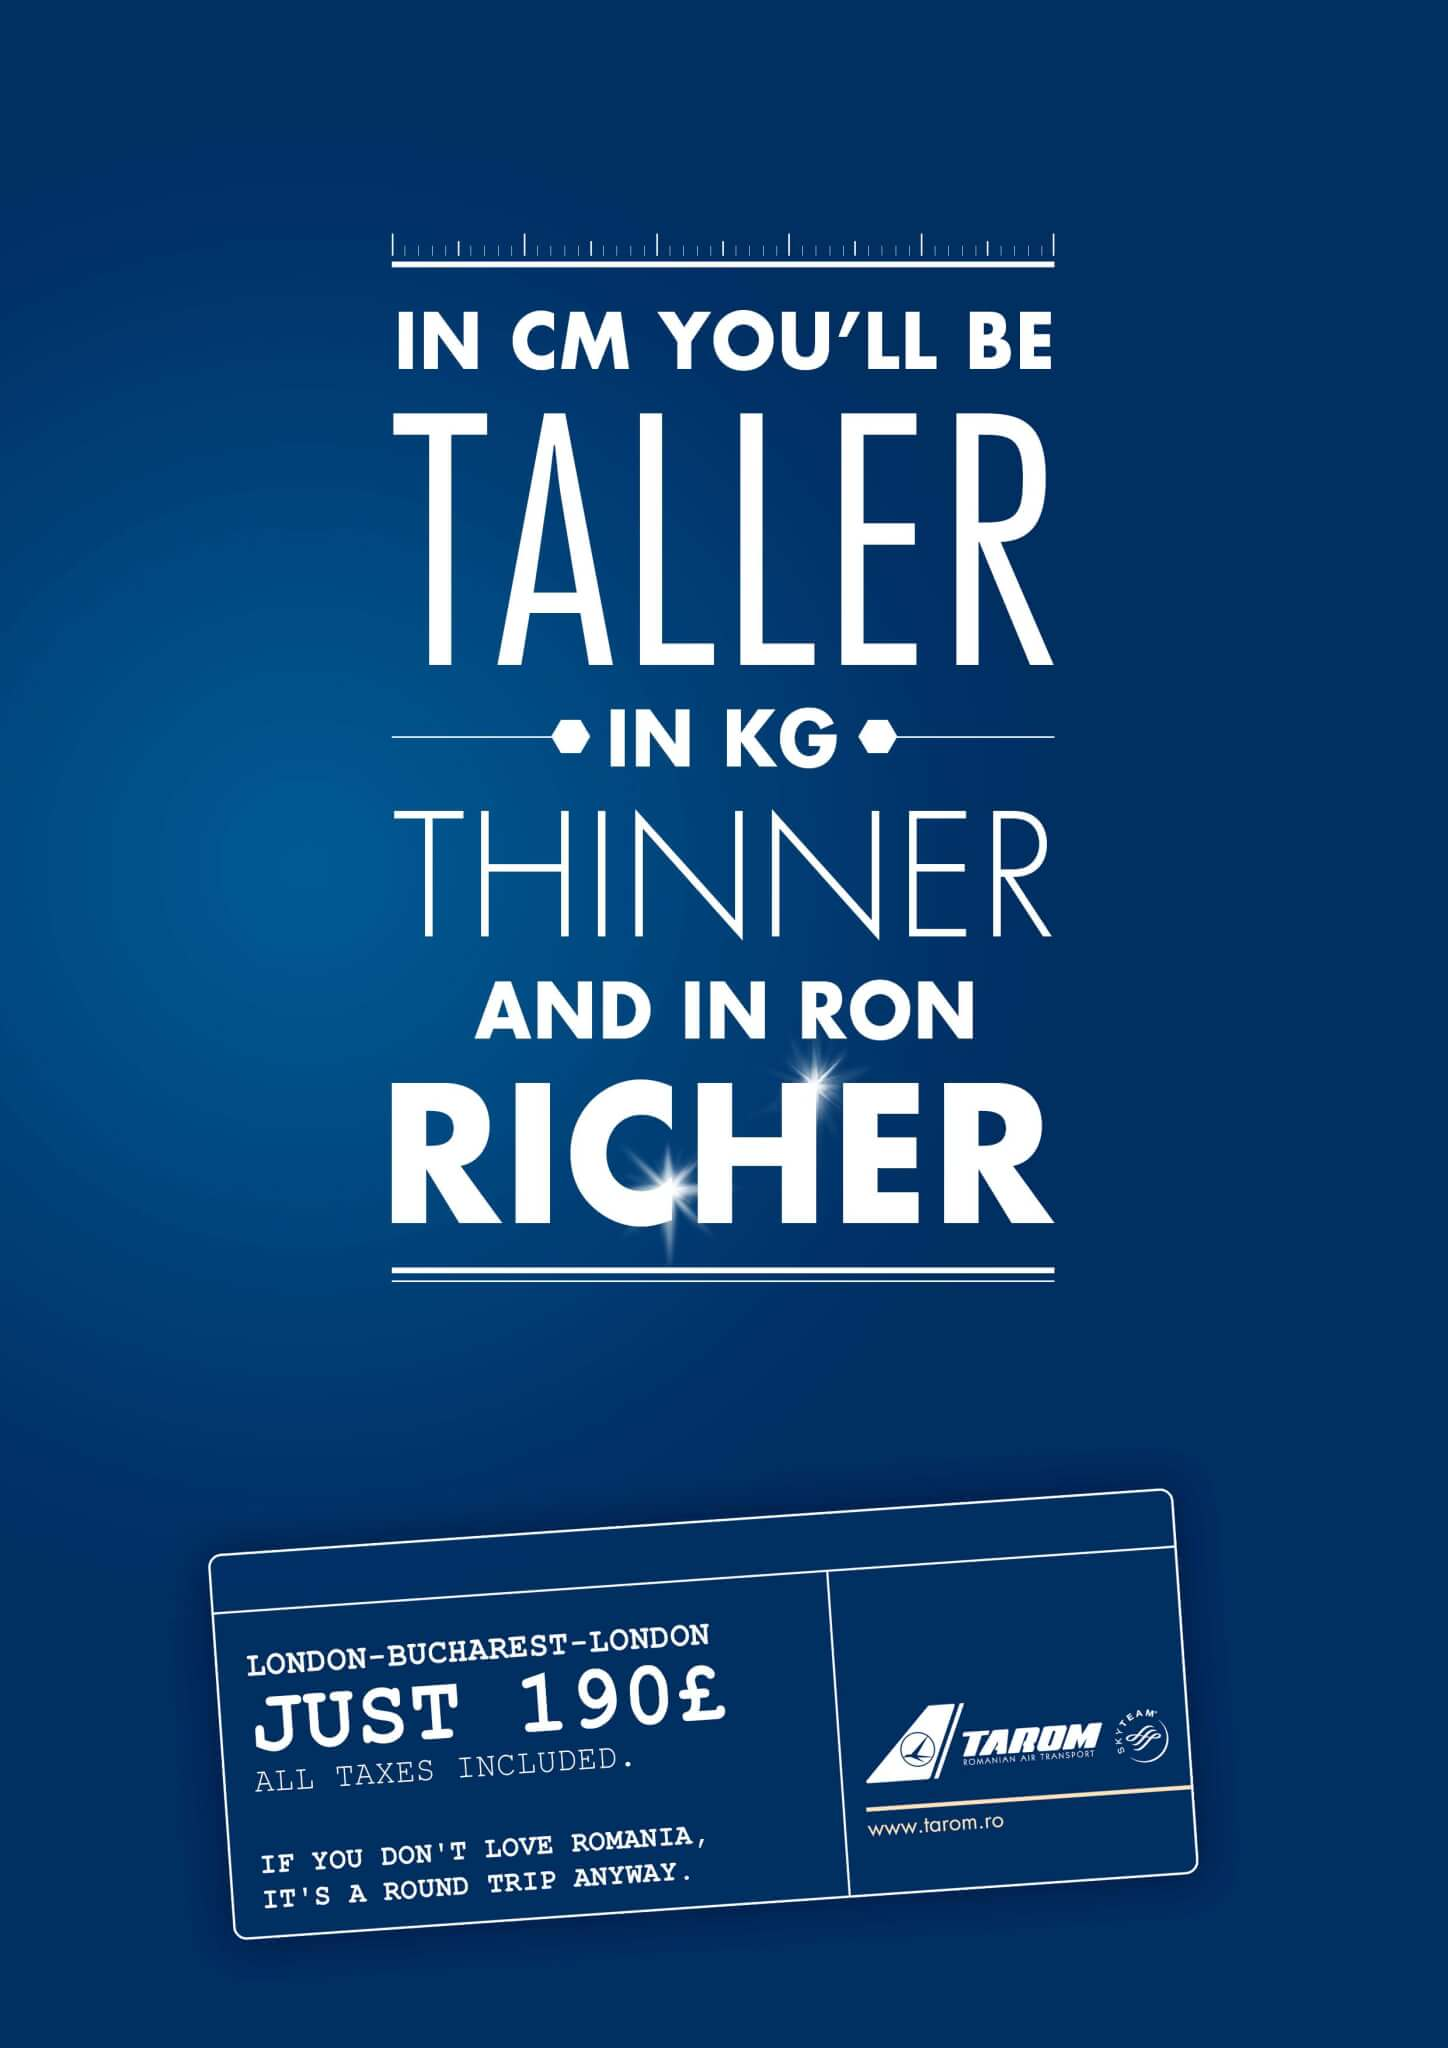 2_T_taller_thinner_richer